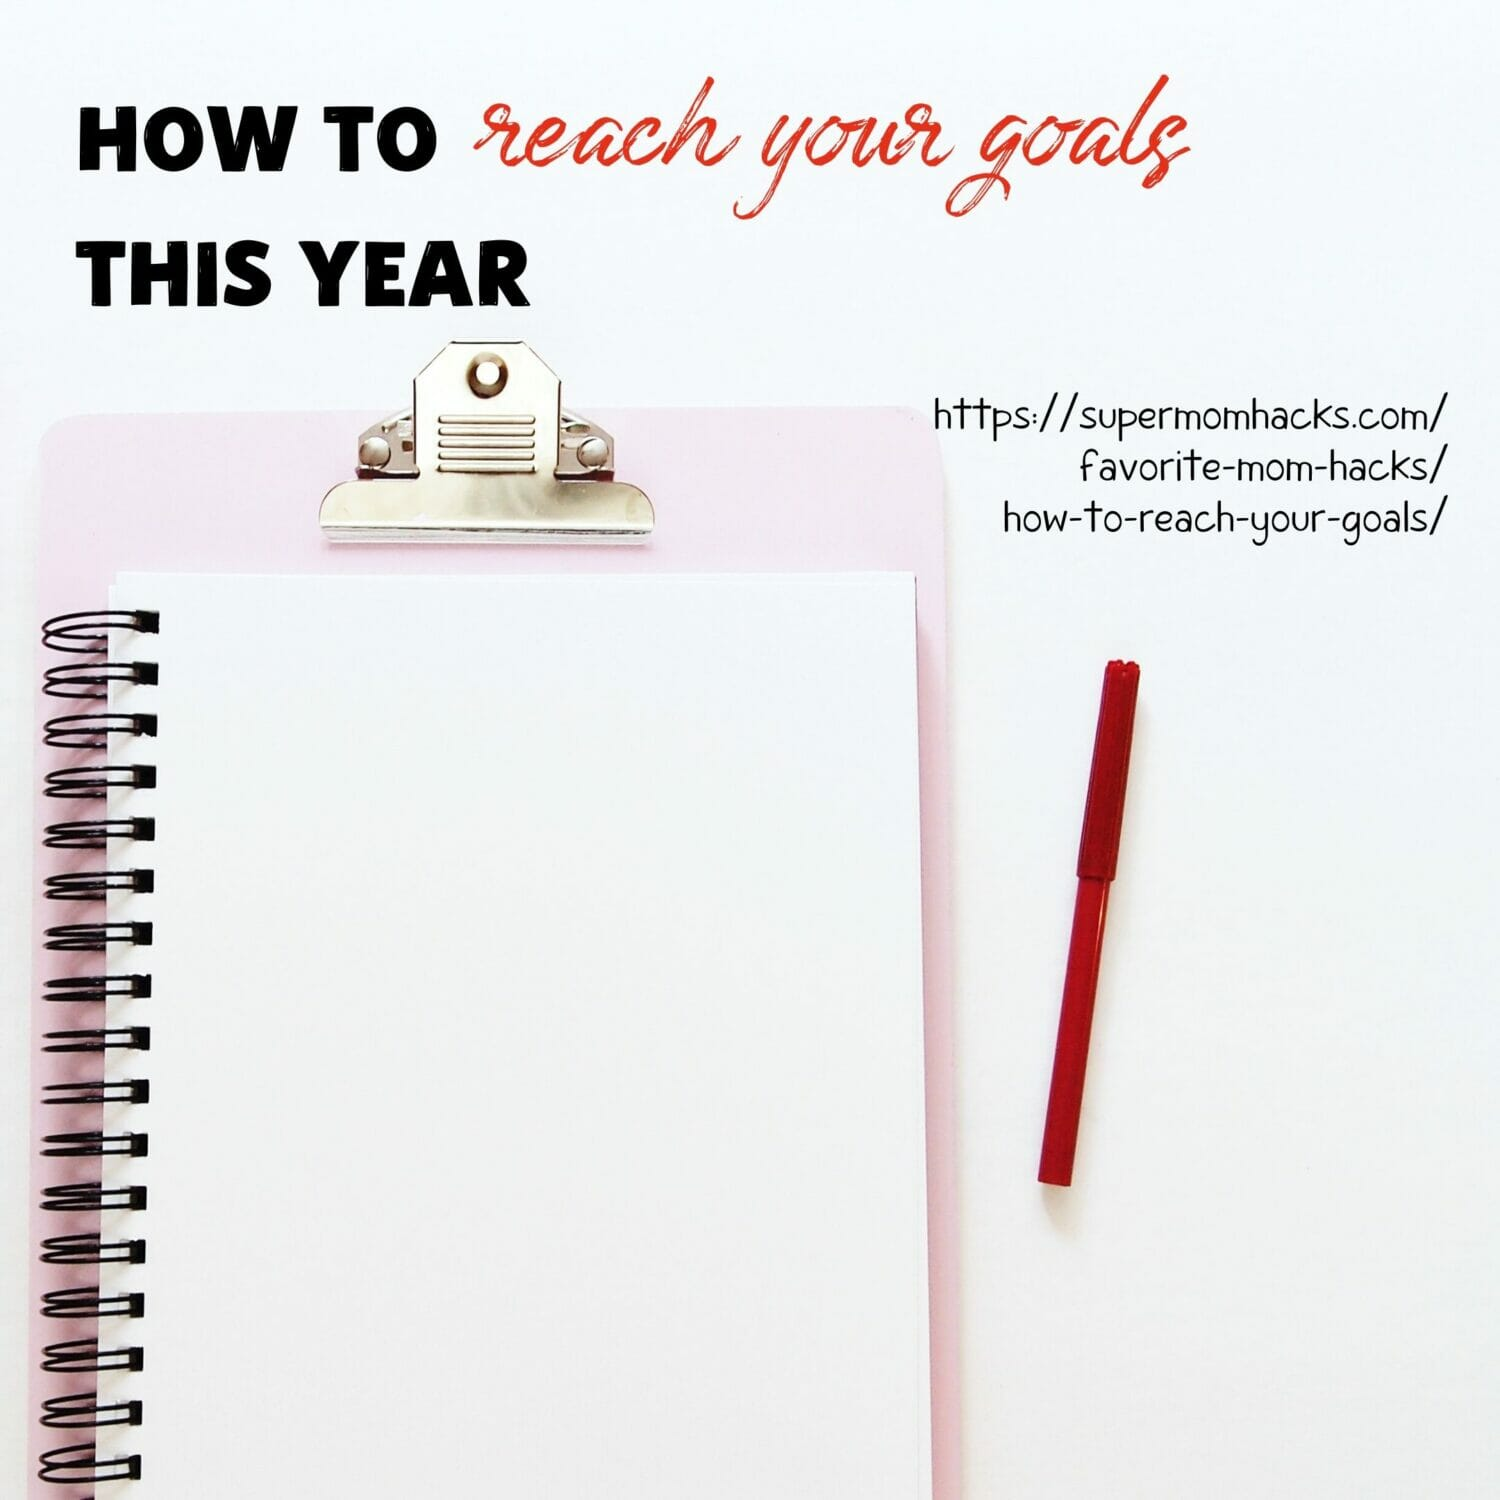 Want to FINALLY reach your goals? This step-by-step guide on how to reach your goals (plus free printable!) will make this the year you slay your goals!